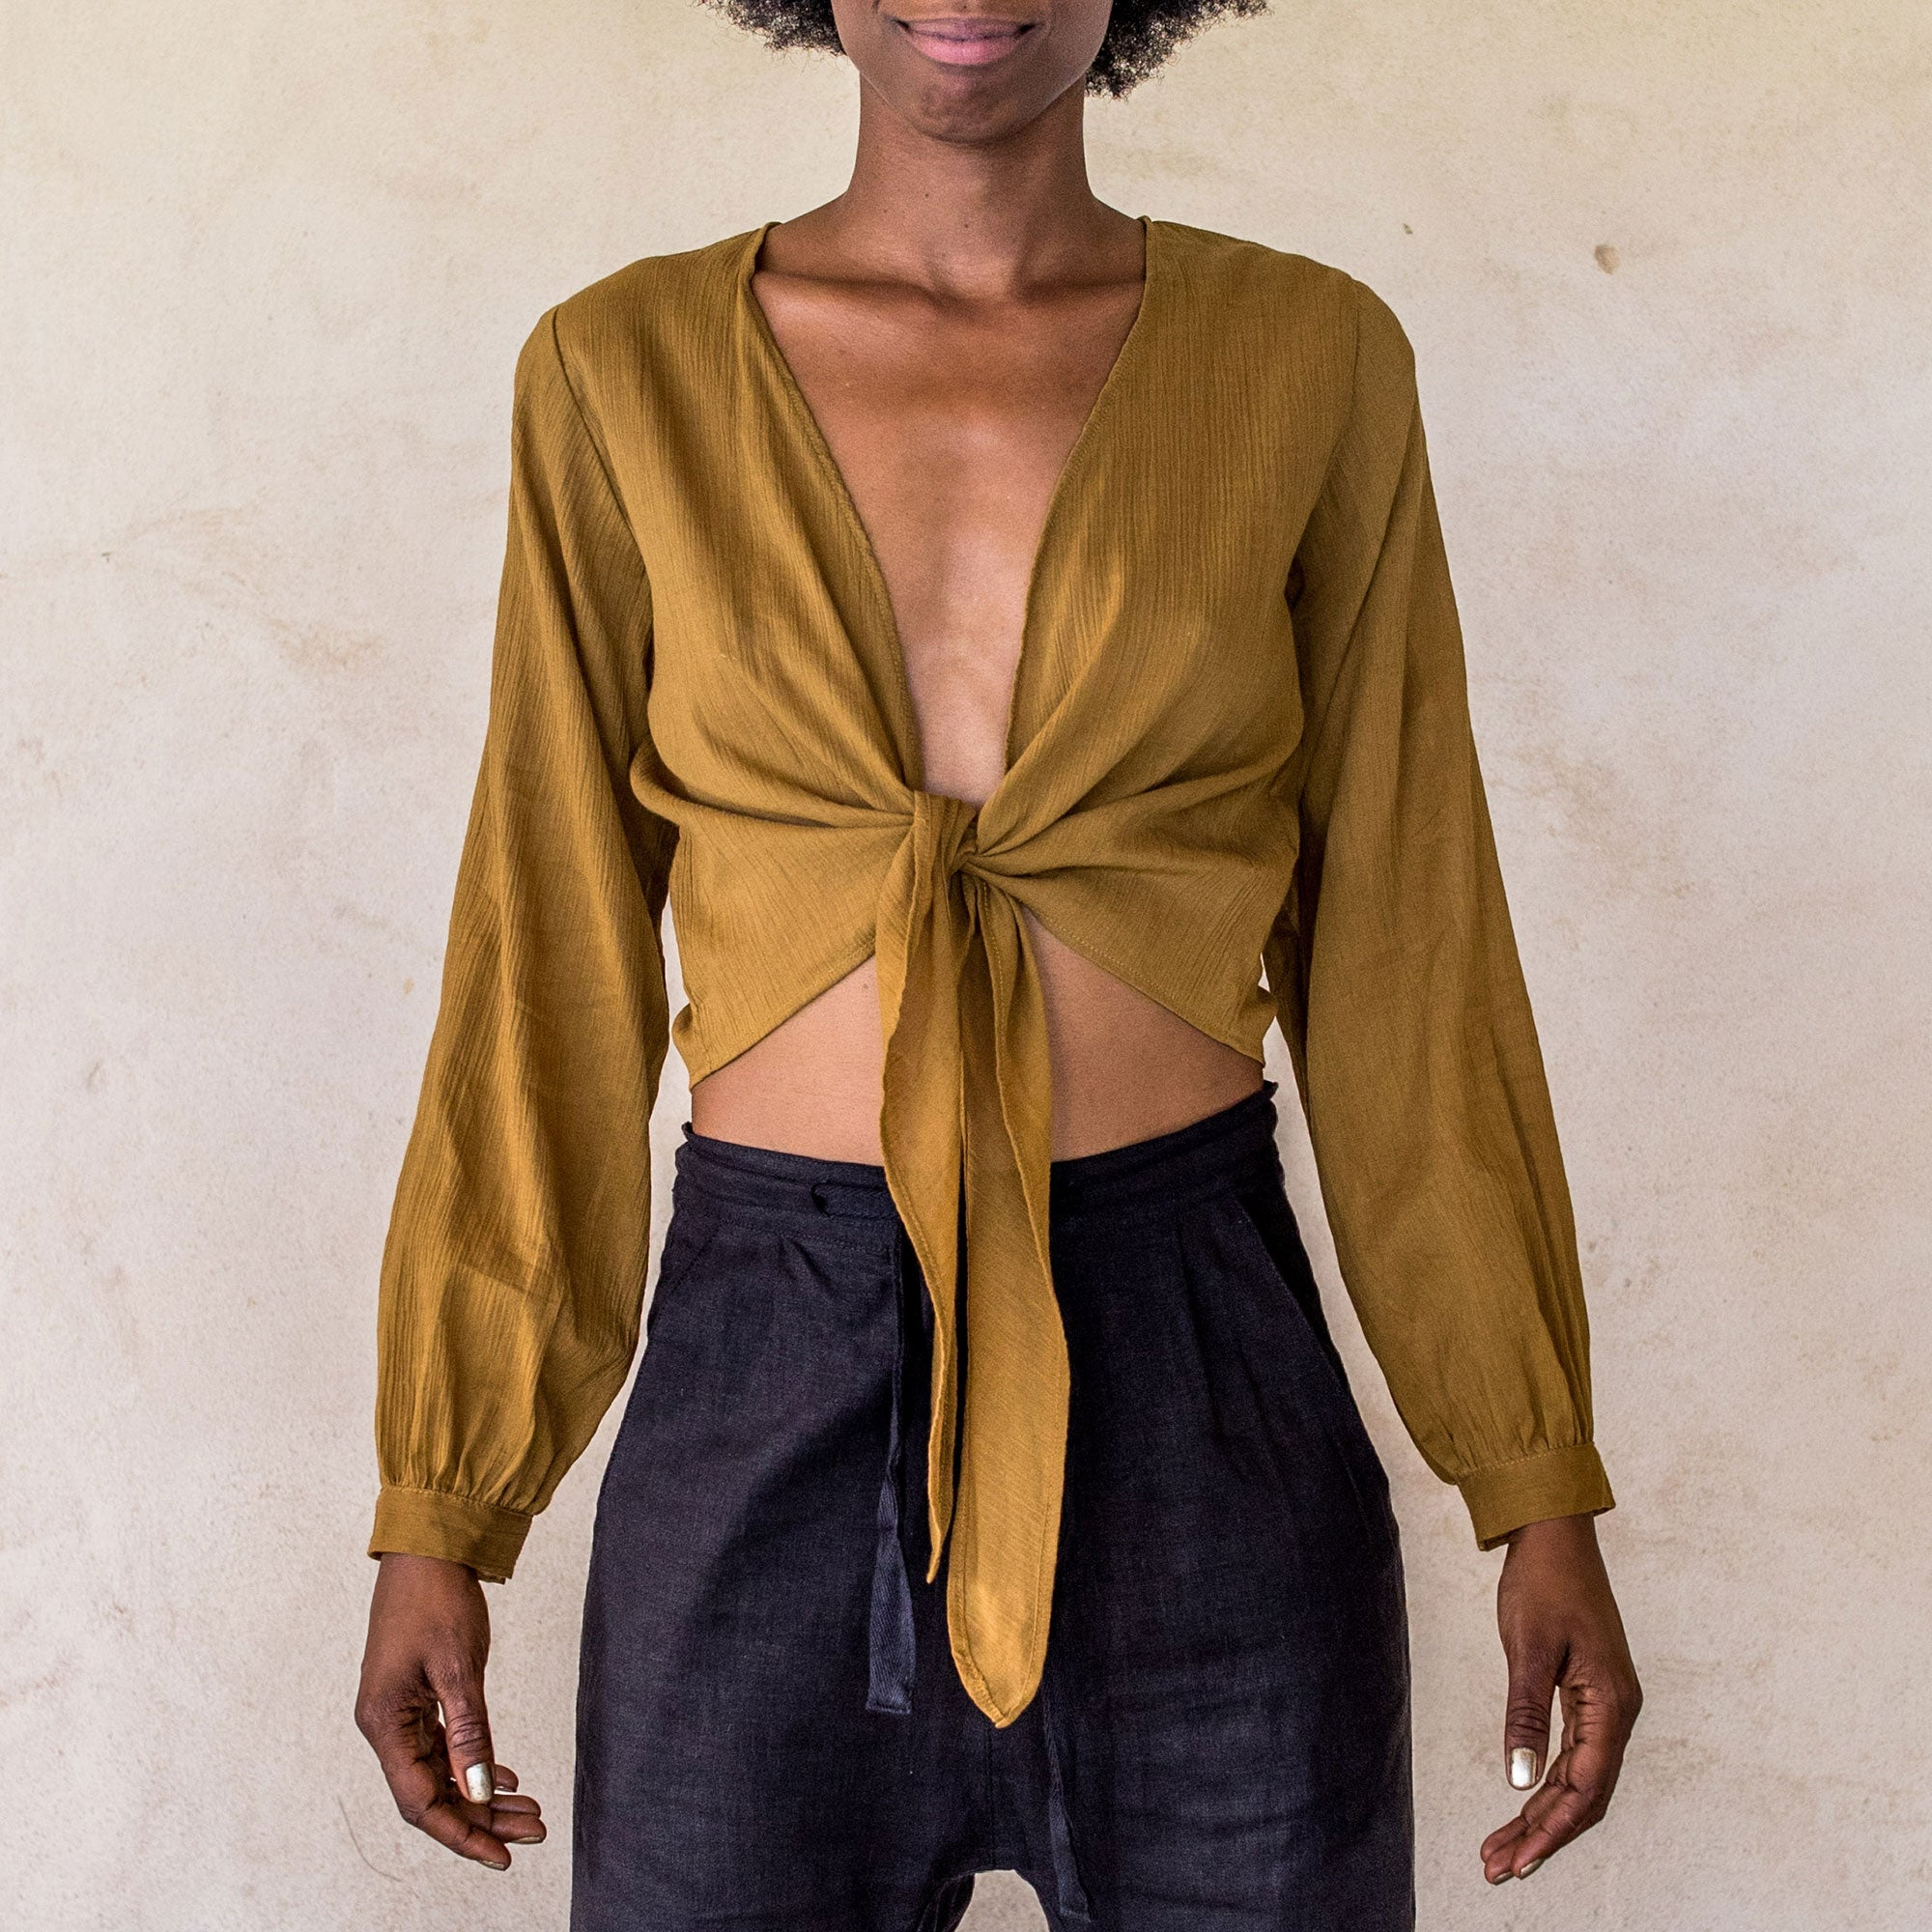 Long Sleeve Wrap - Golden - Idis Designs